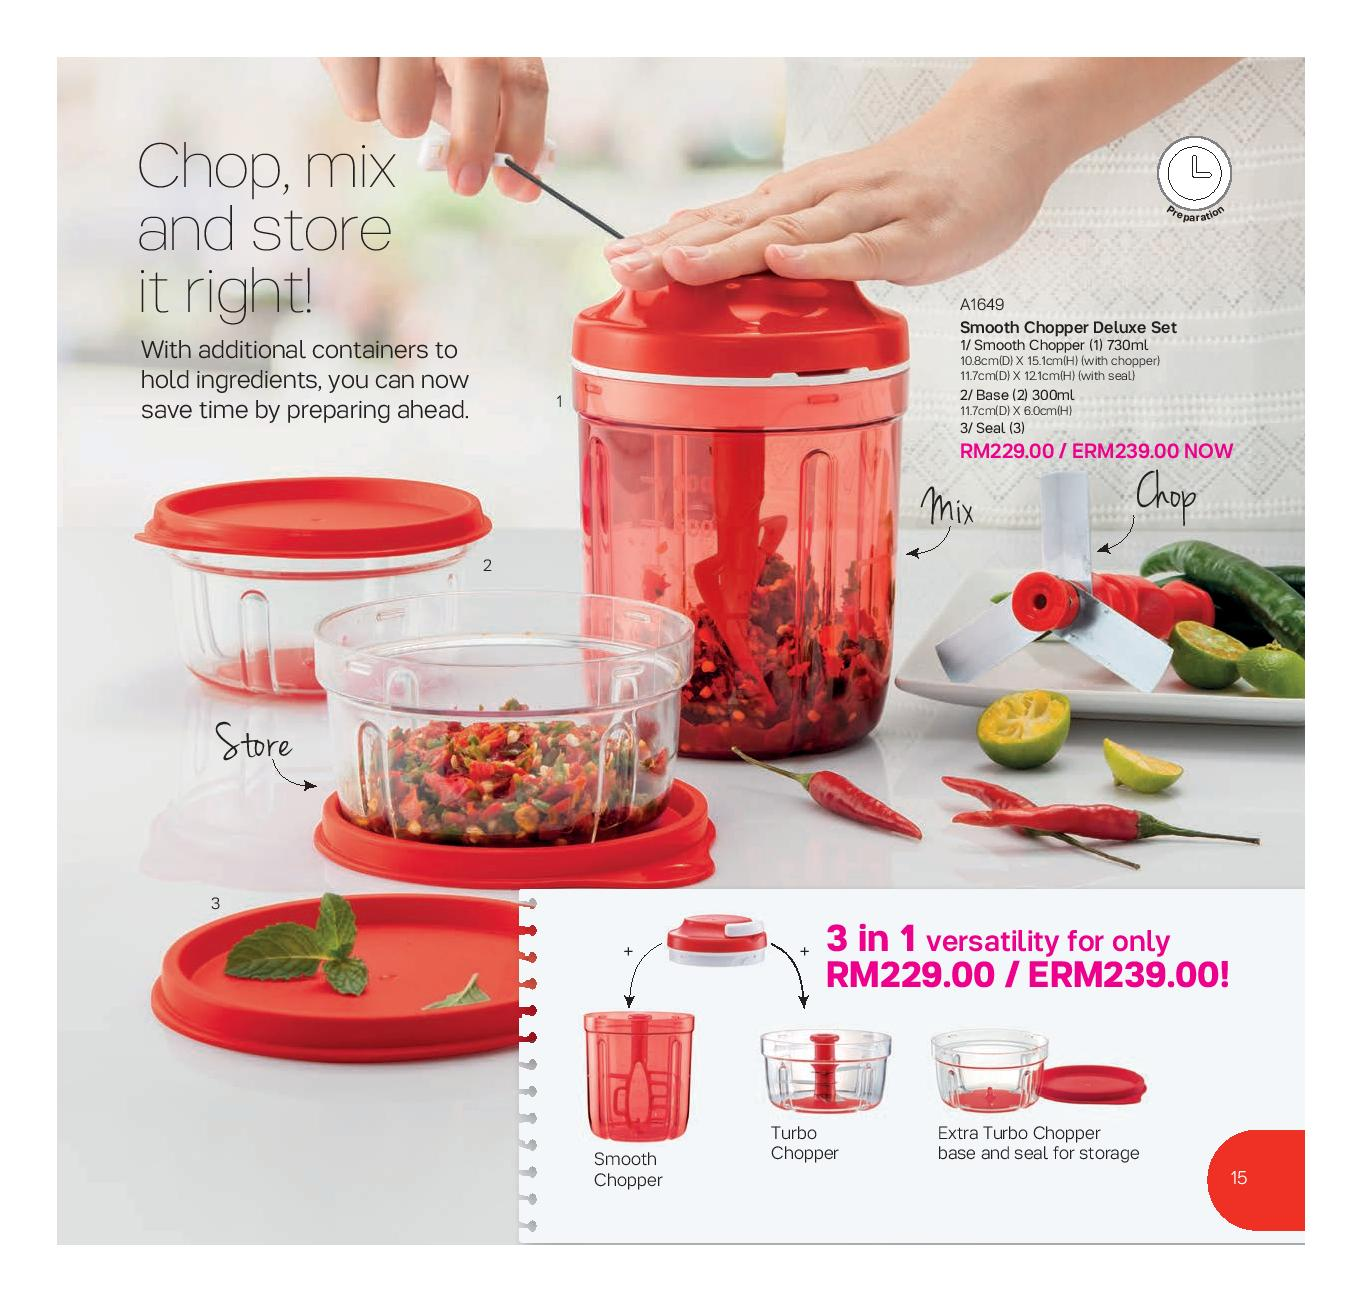 tupperware catalog 01 july 2016 12 august 2016 tupperware kakakshop tupperware malaysia. Black Bedroom Furniture Sets. Home Design Ideas